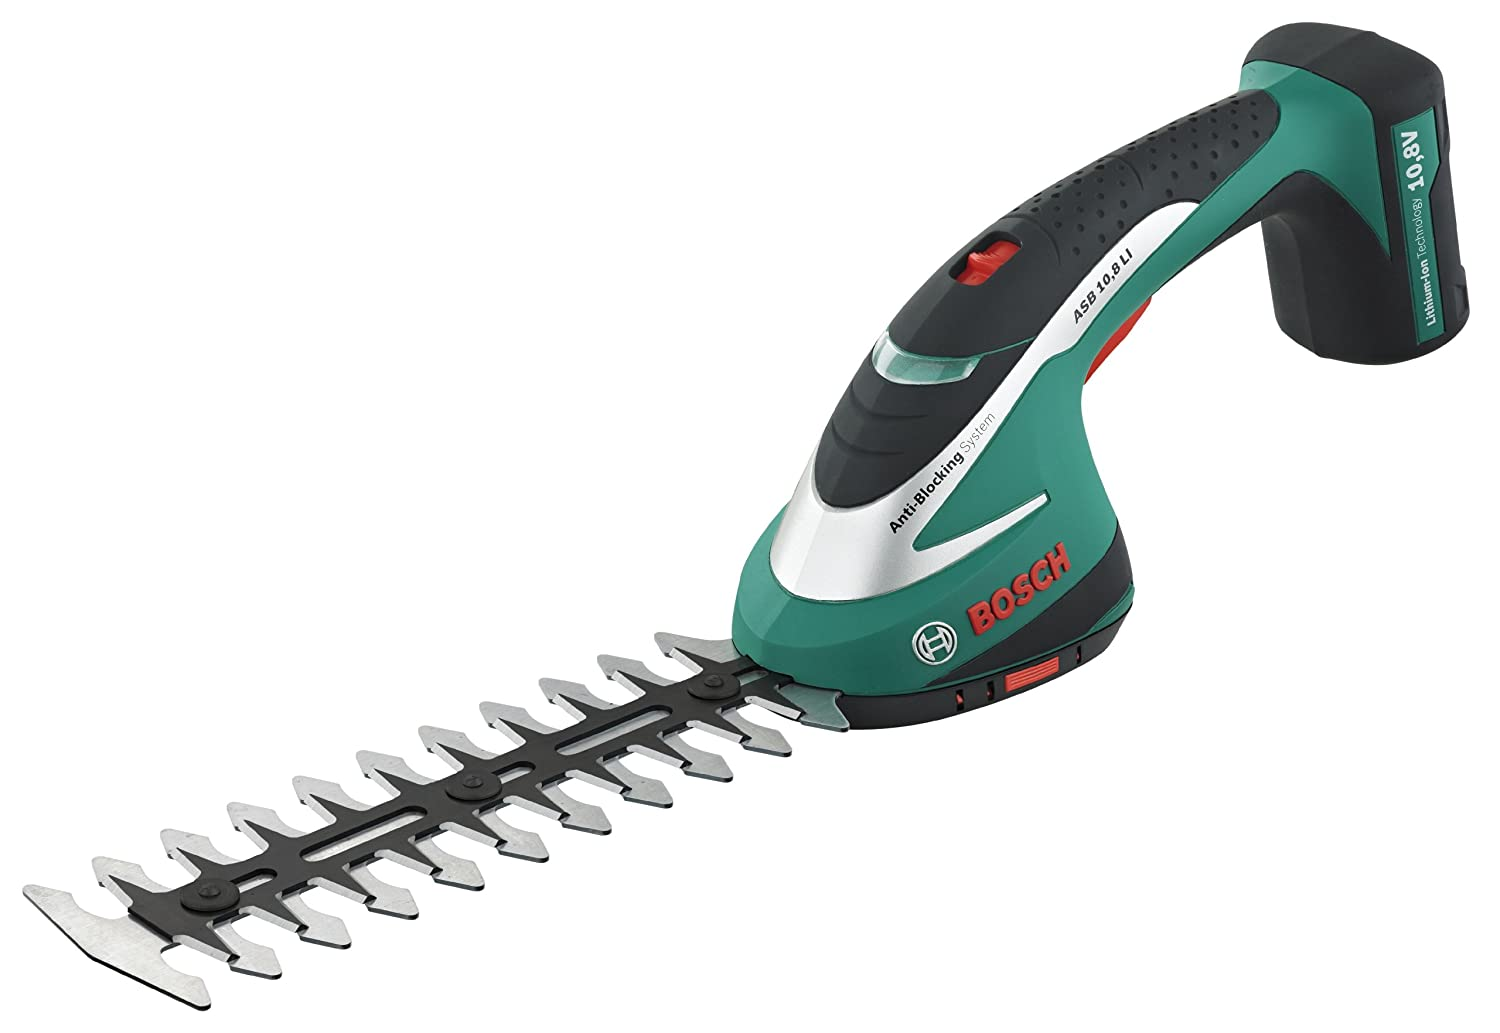 Bosch ASB 10.8 LI Cordless Shrub Shear with Integrated 10.8 V Lithium-Ion Battery 0600856370 hedgesheers Power_Tools_ Trimmers / Edgers